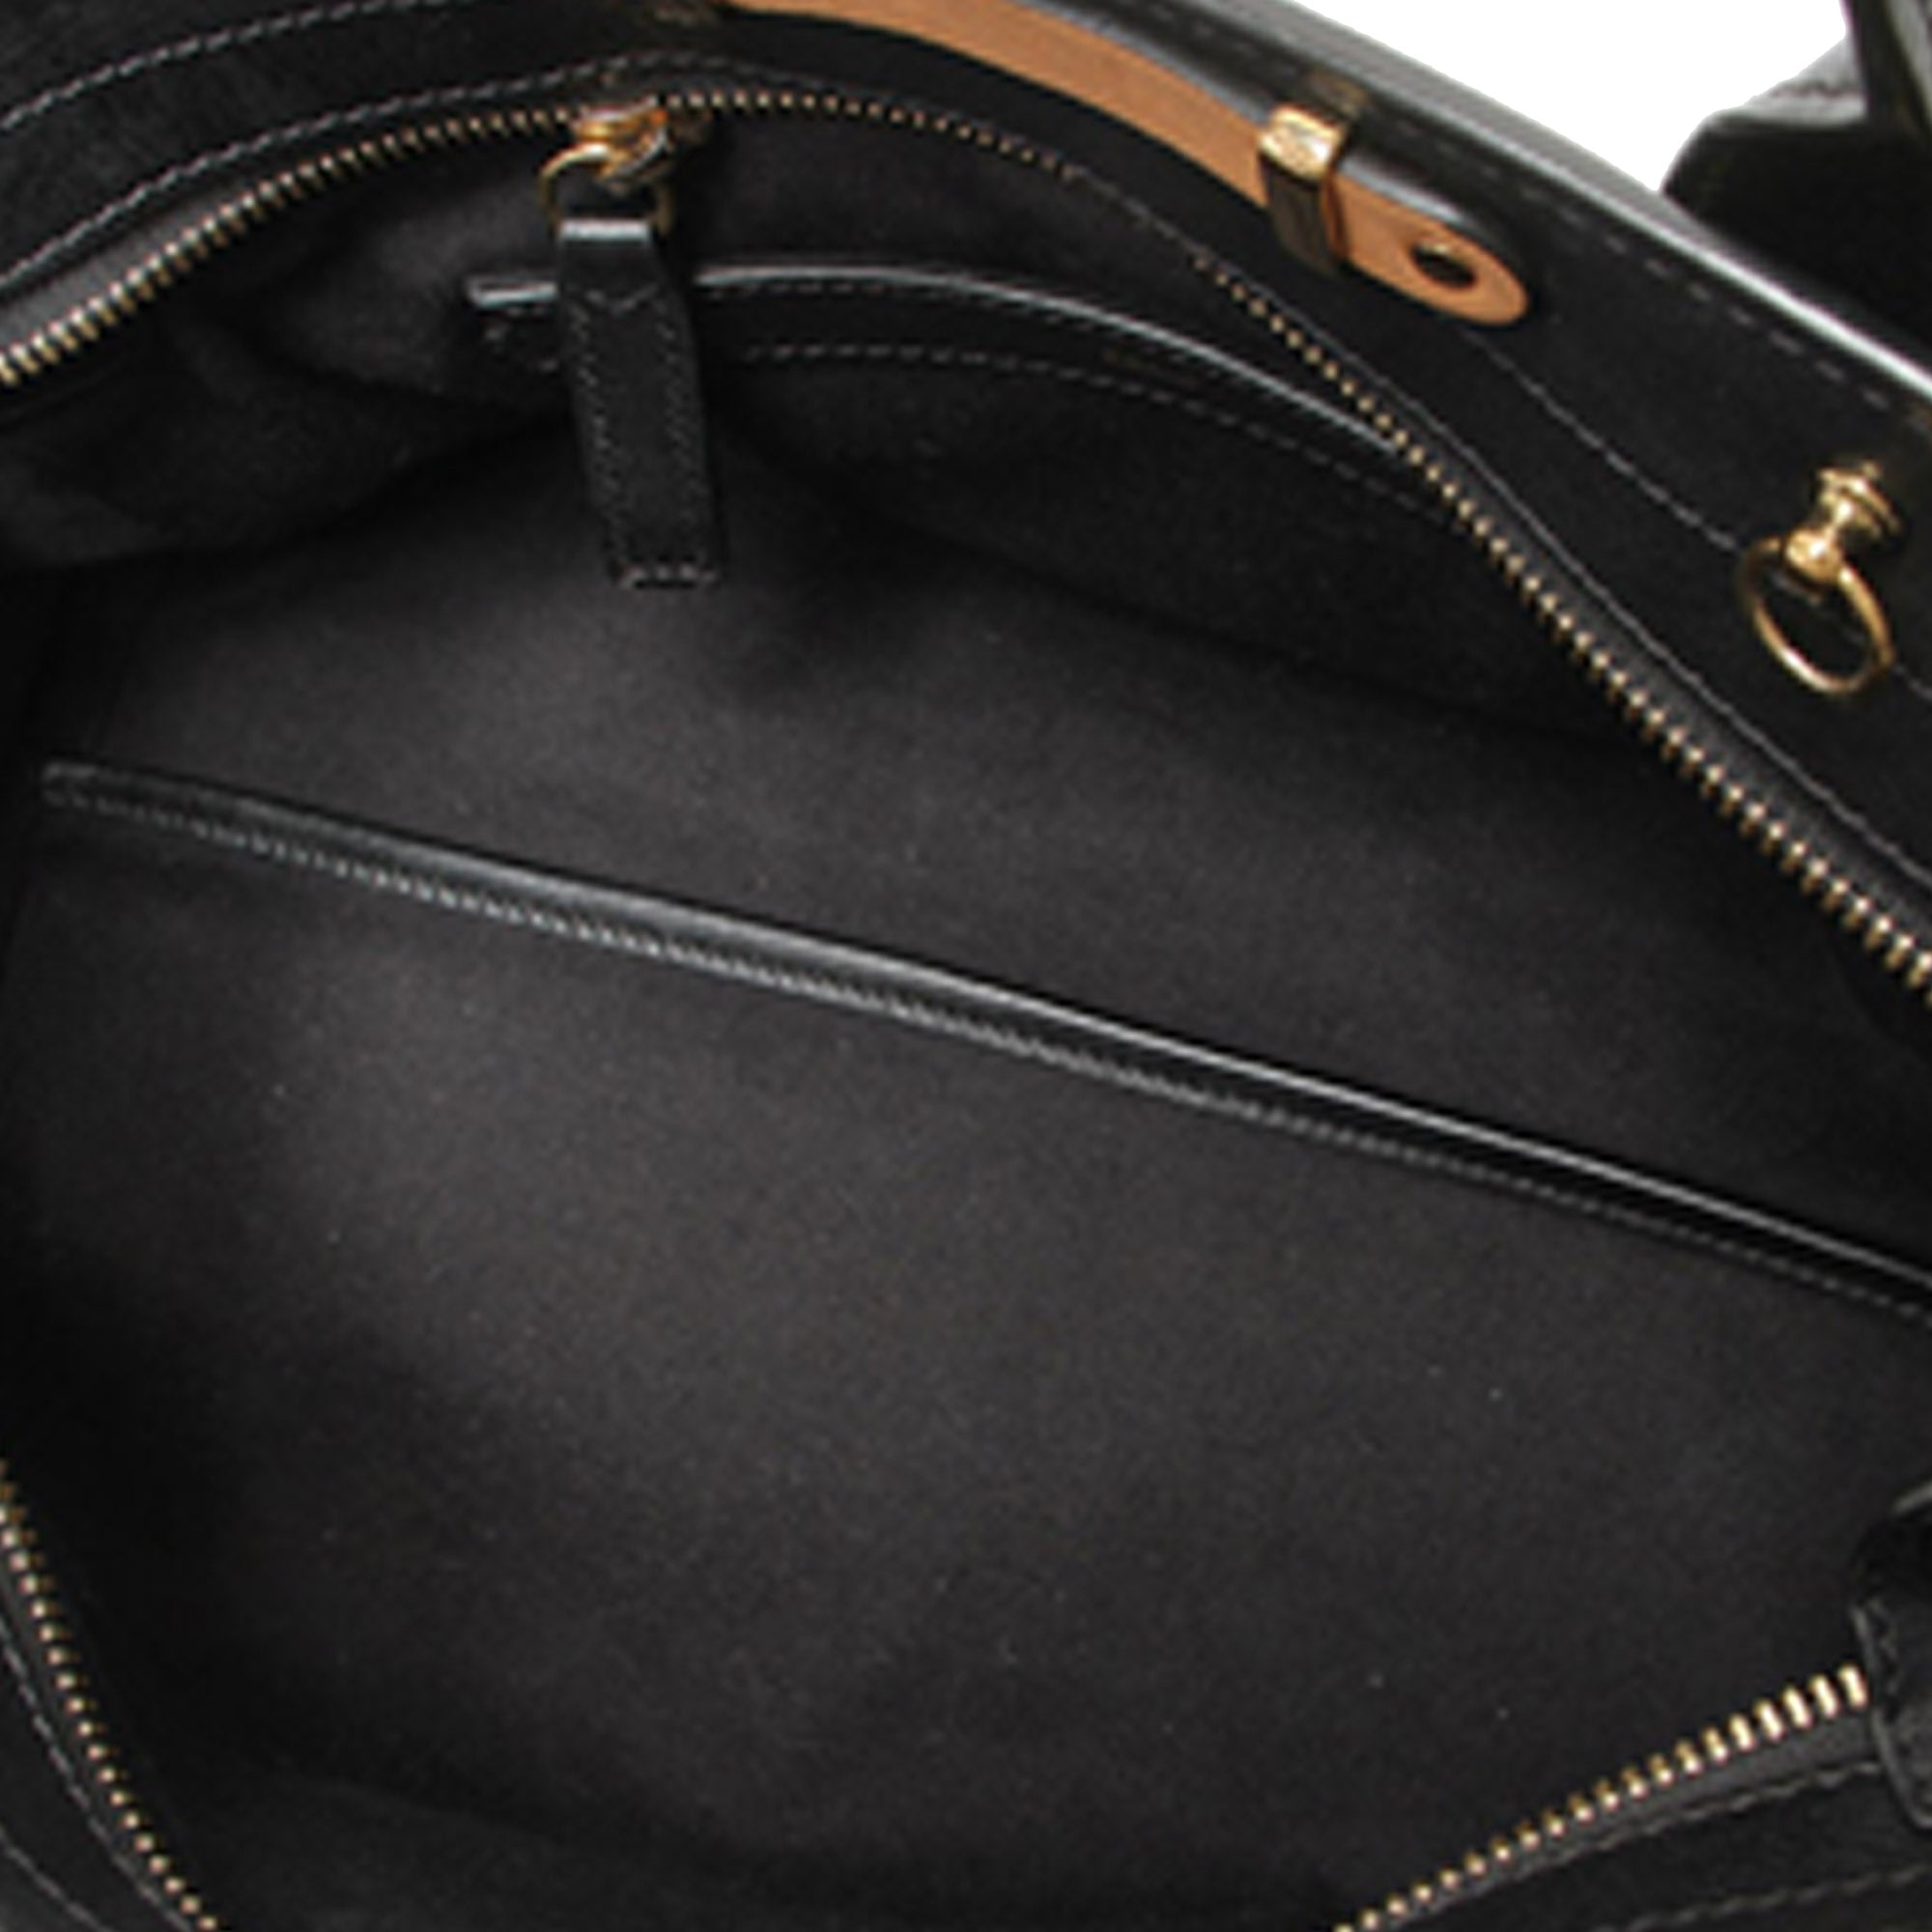 Chloe Black Alice Leather Satchel